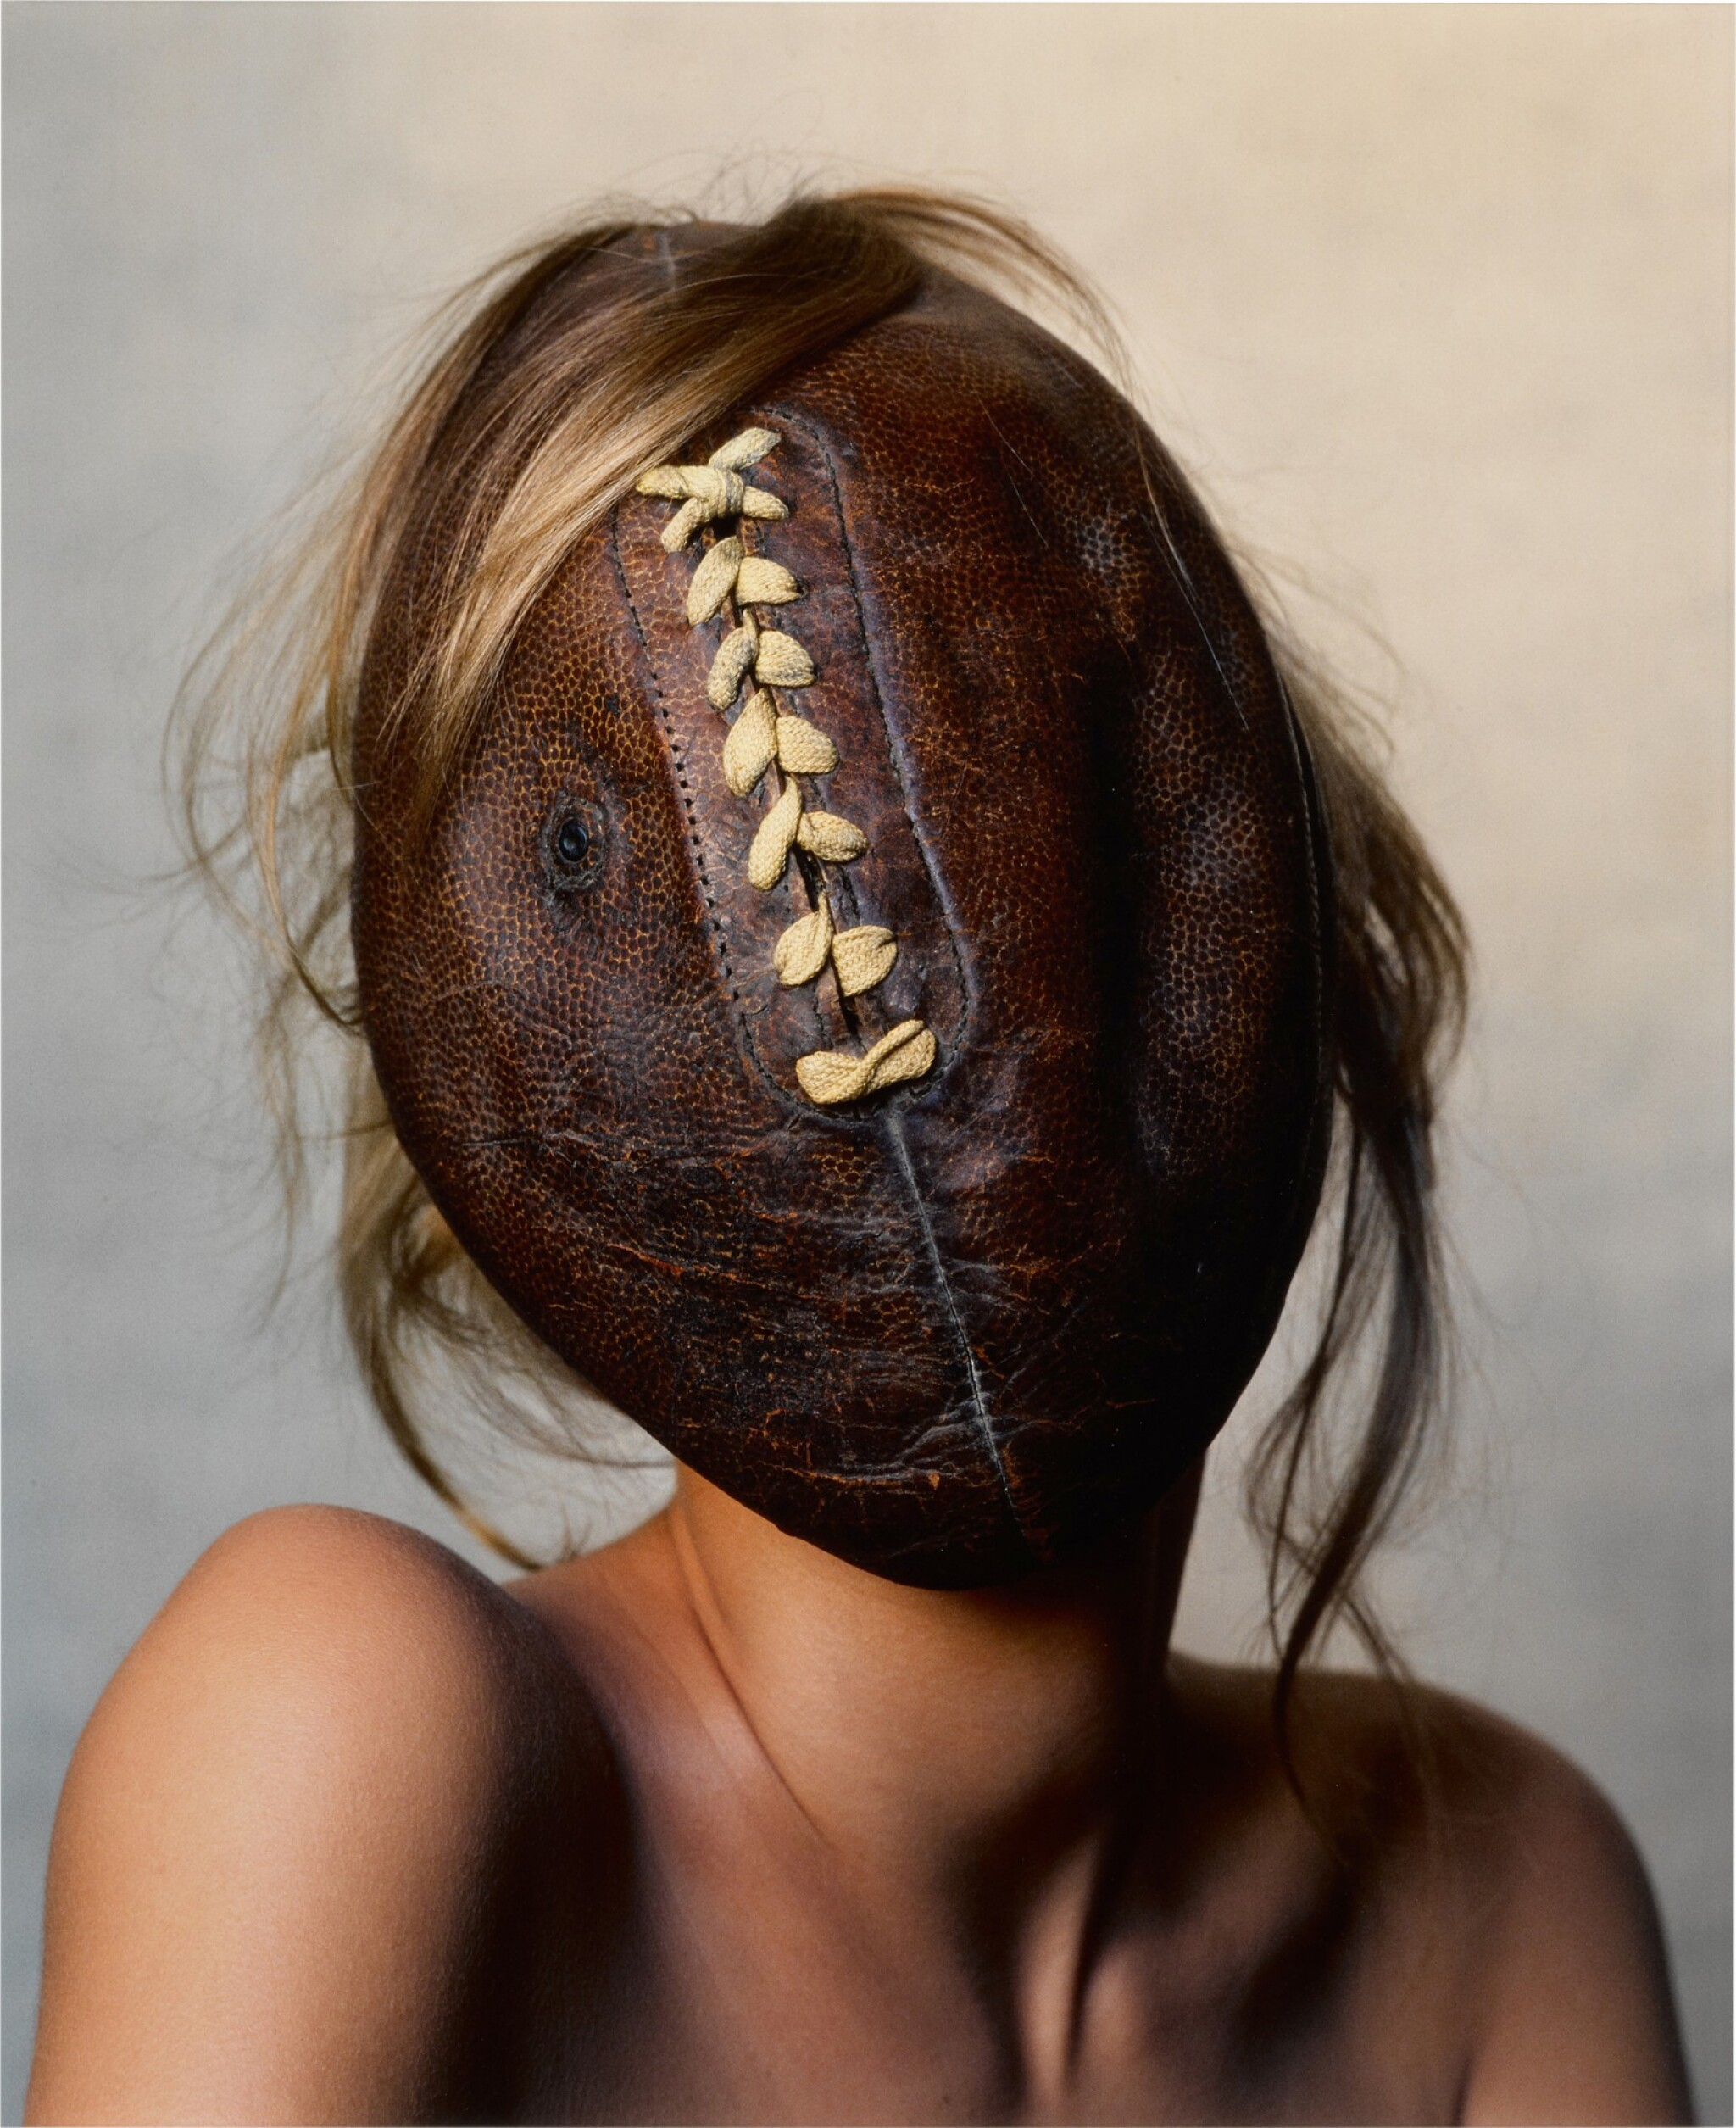 View full screen - View 1 of Lot 11. 'Football Face, New York, Sept. 24, 2002'.